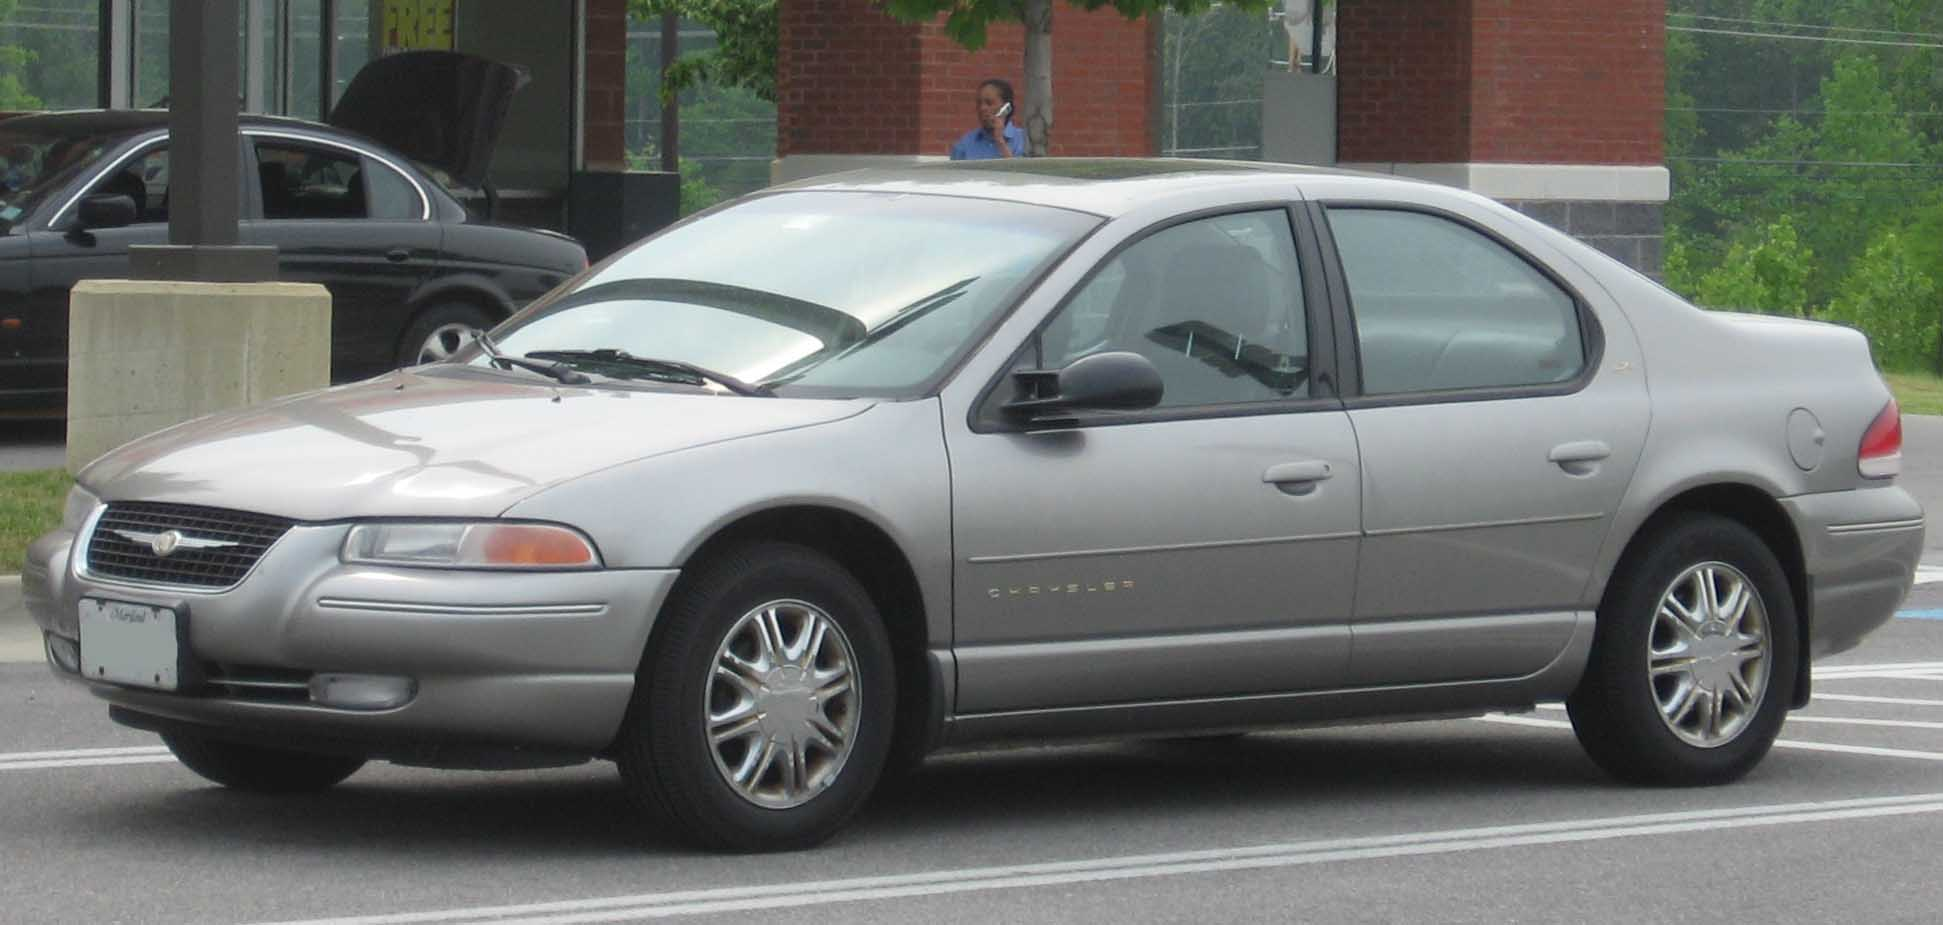 Chrysler Cirrus #14